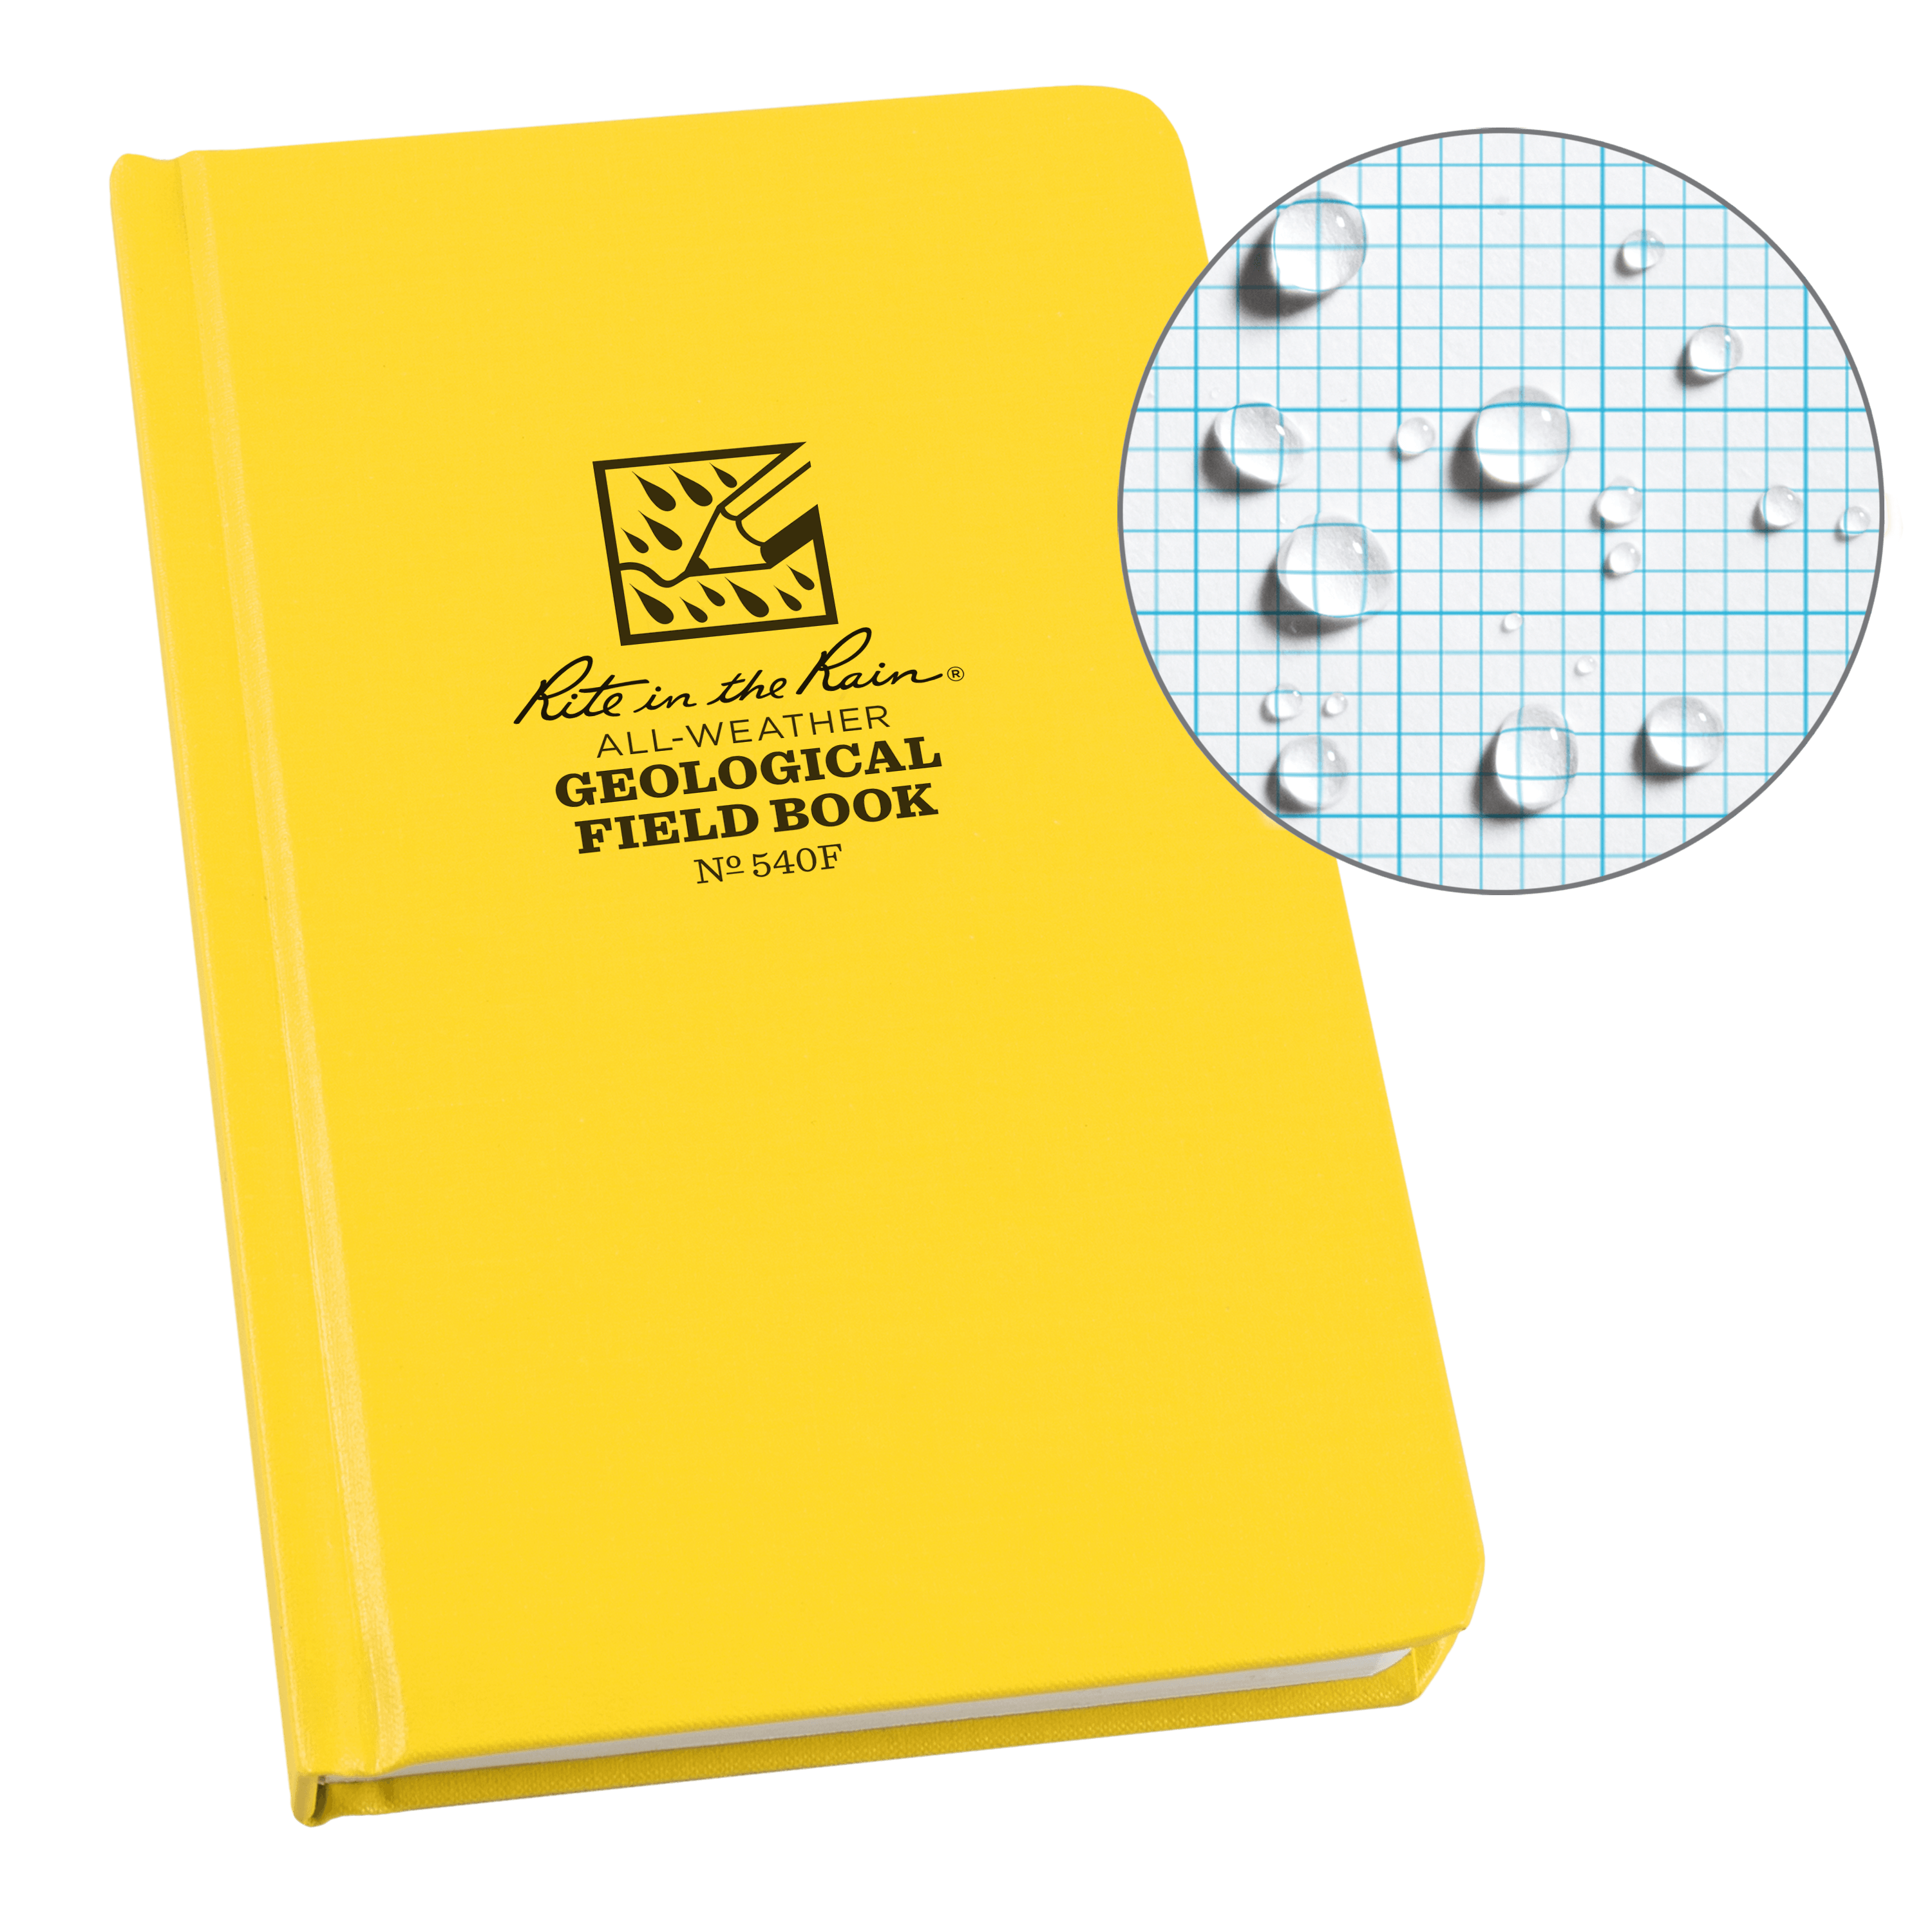 "Rite in the Rain All-Weather Hard Cover Notebook, 4 3/4"" x 7 1/2"", Yellow Cover, Geological Pattern (No. 540F)"